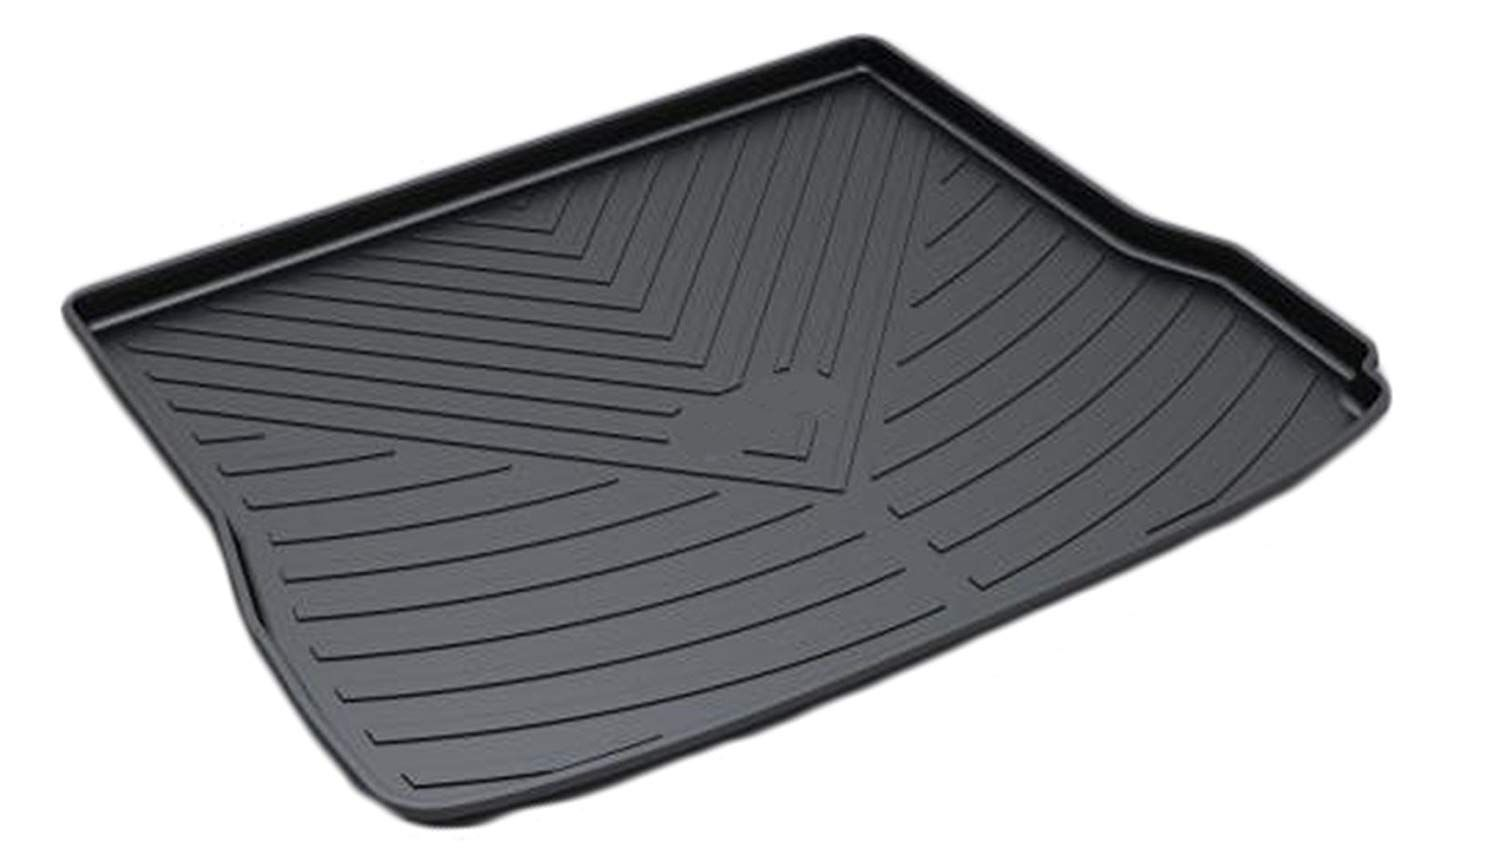 Cargo Liner Rear Cargo Tray Trunk Floor Mat Waterproof Protector For 2008 2016 Audi Q5 By Kaungka Check Out The Cargo Liner Waterproof Protector Floor Mats